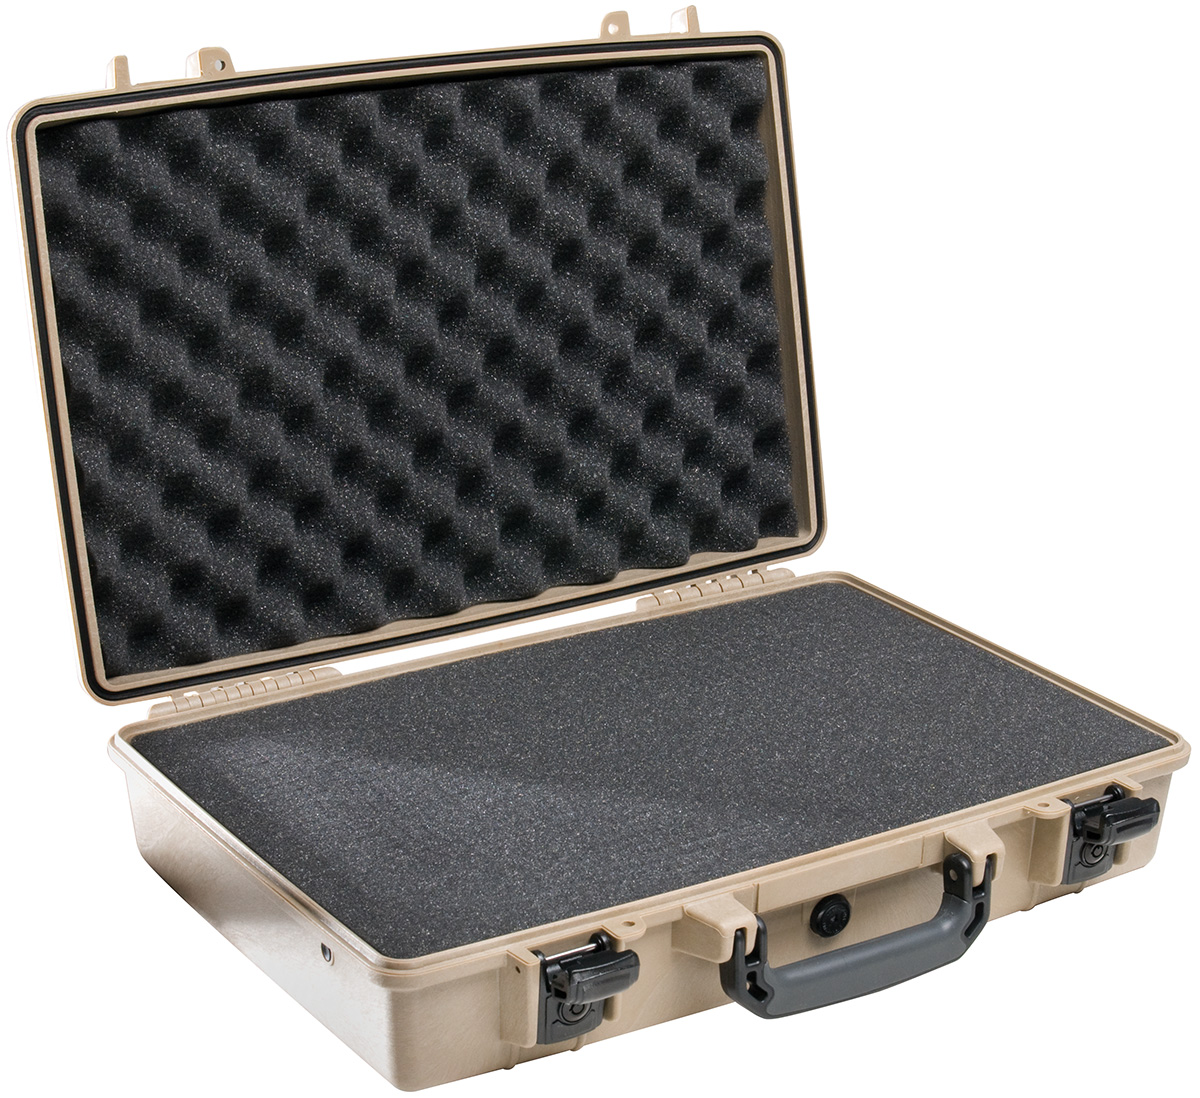 pelican peli products 1490 hard briefcase laptop military case